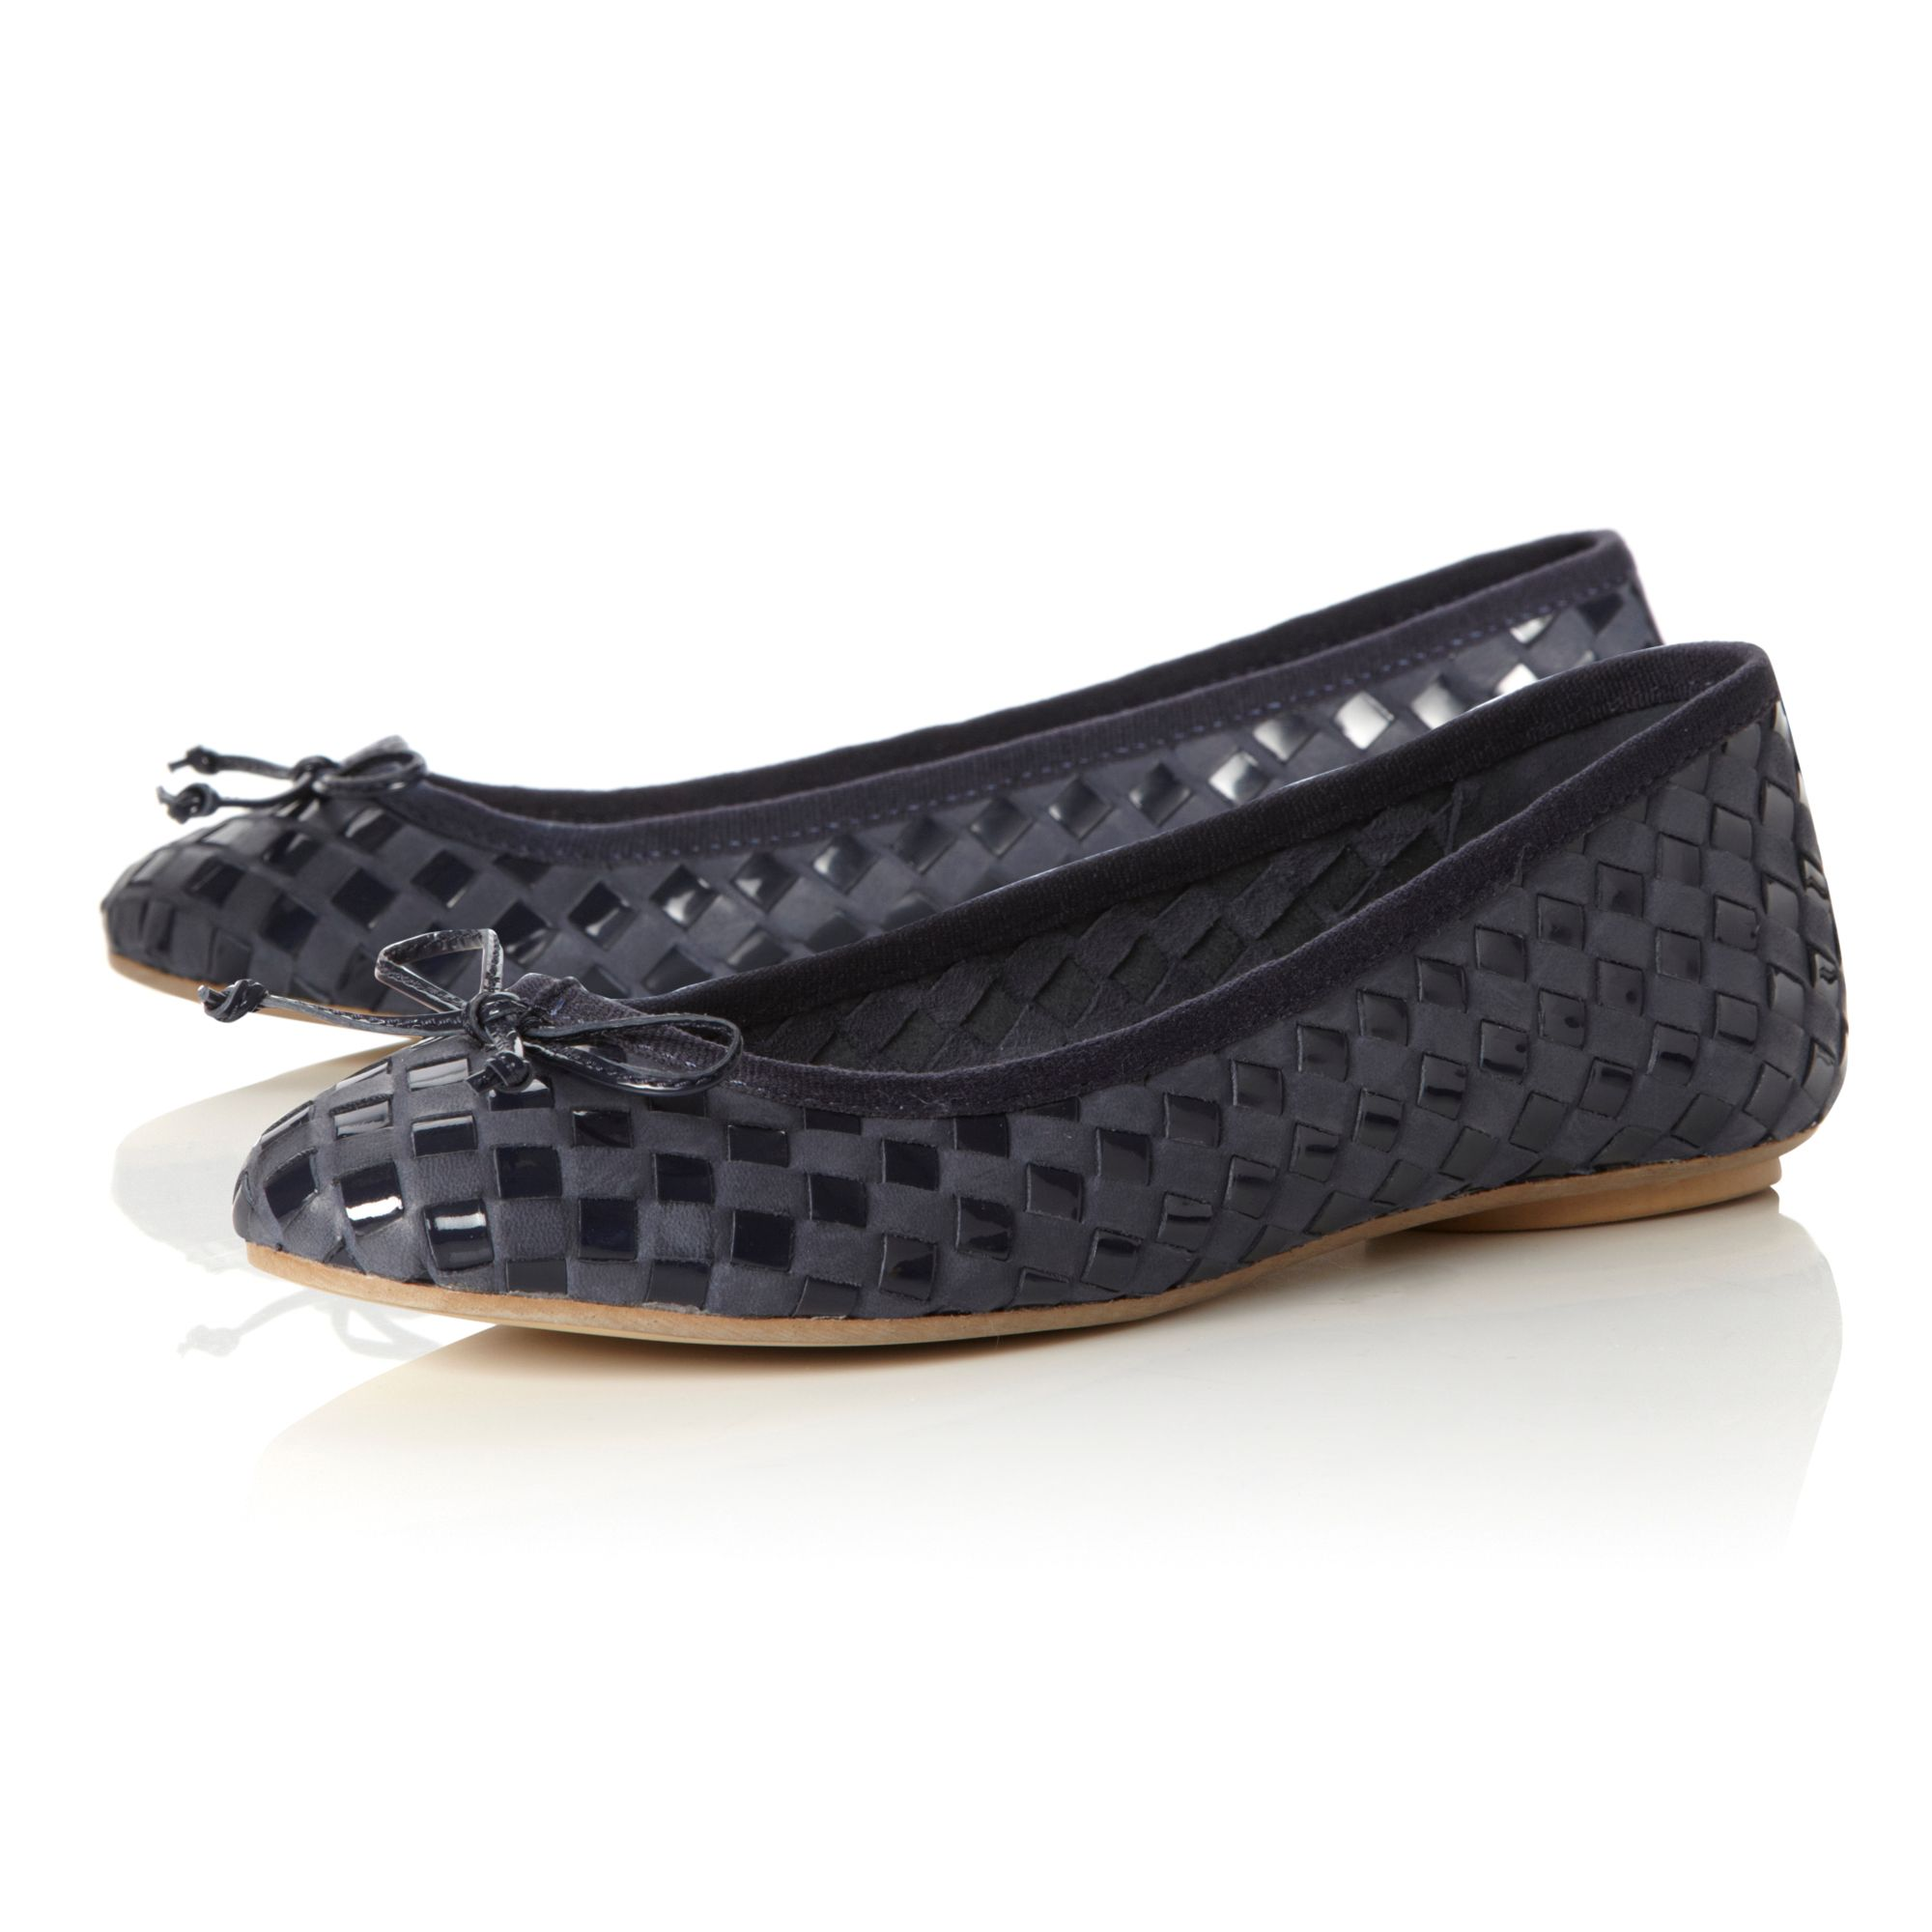 Medoras Woven Leather Ballerina Shoes